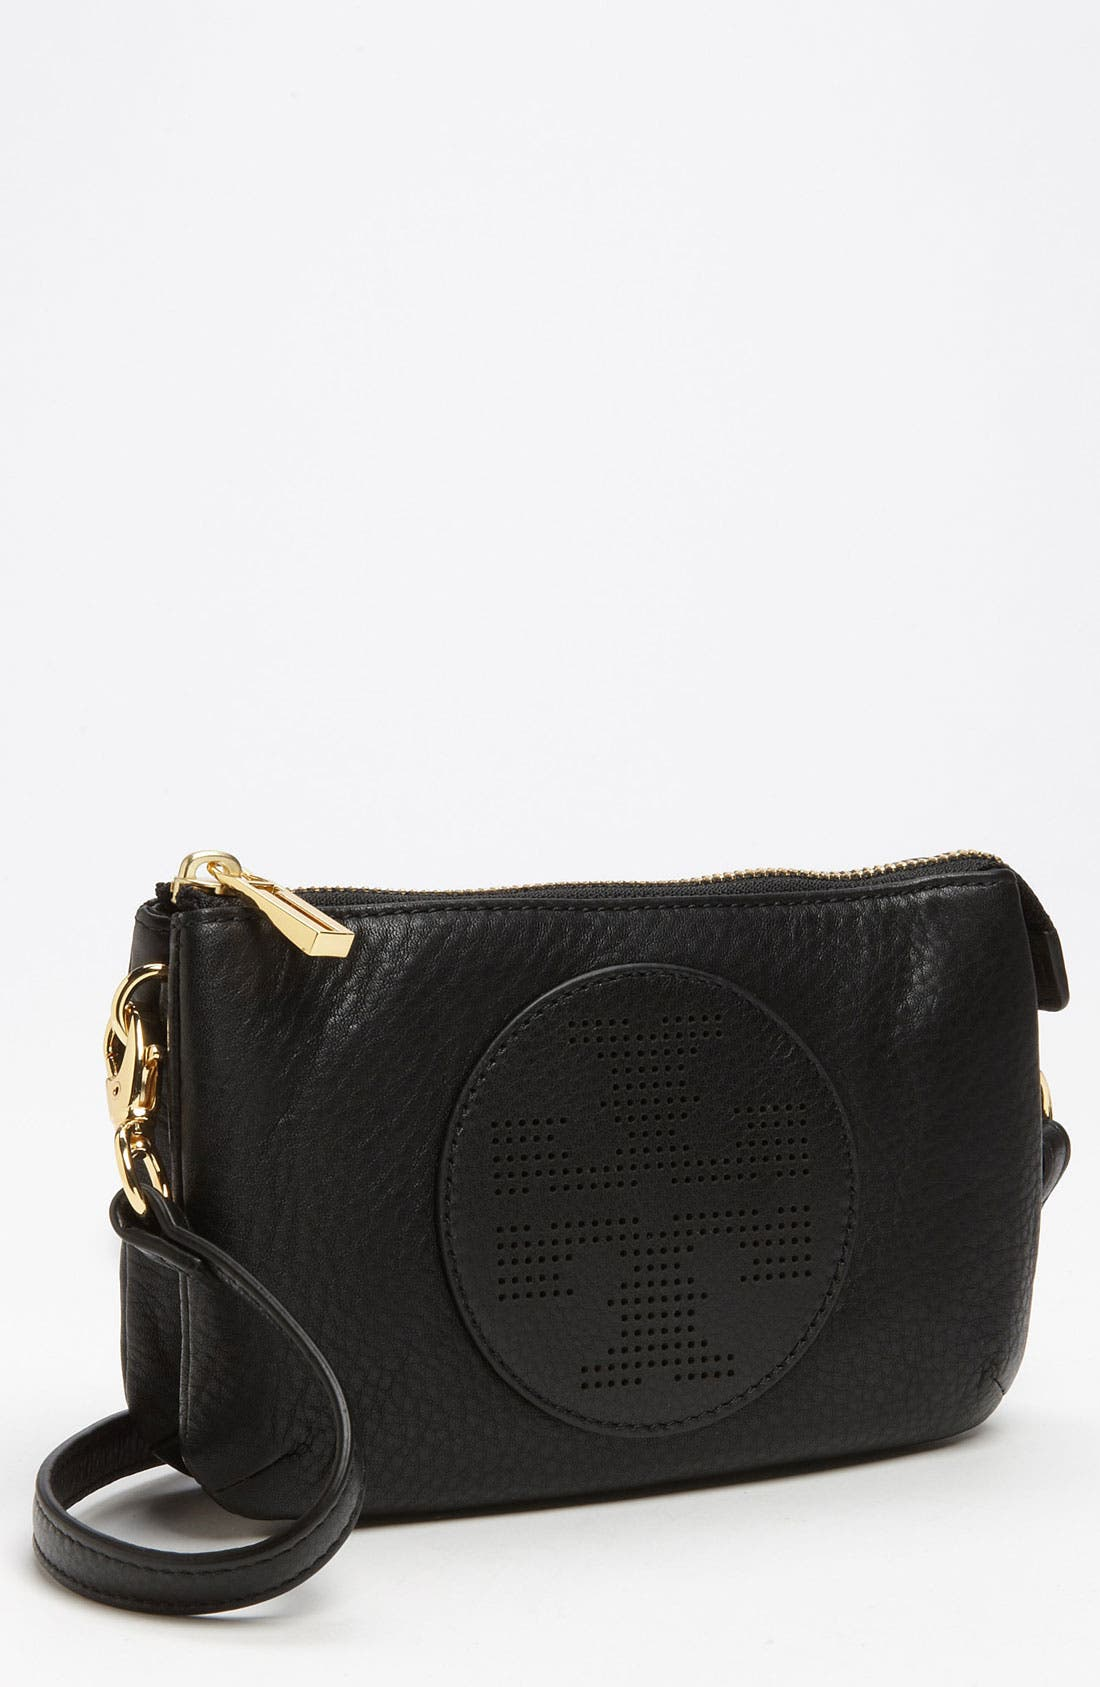 Main Image - Tory Burch 'Kipp - Small' Crossbody Bag